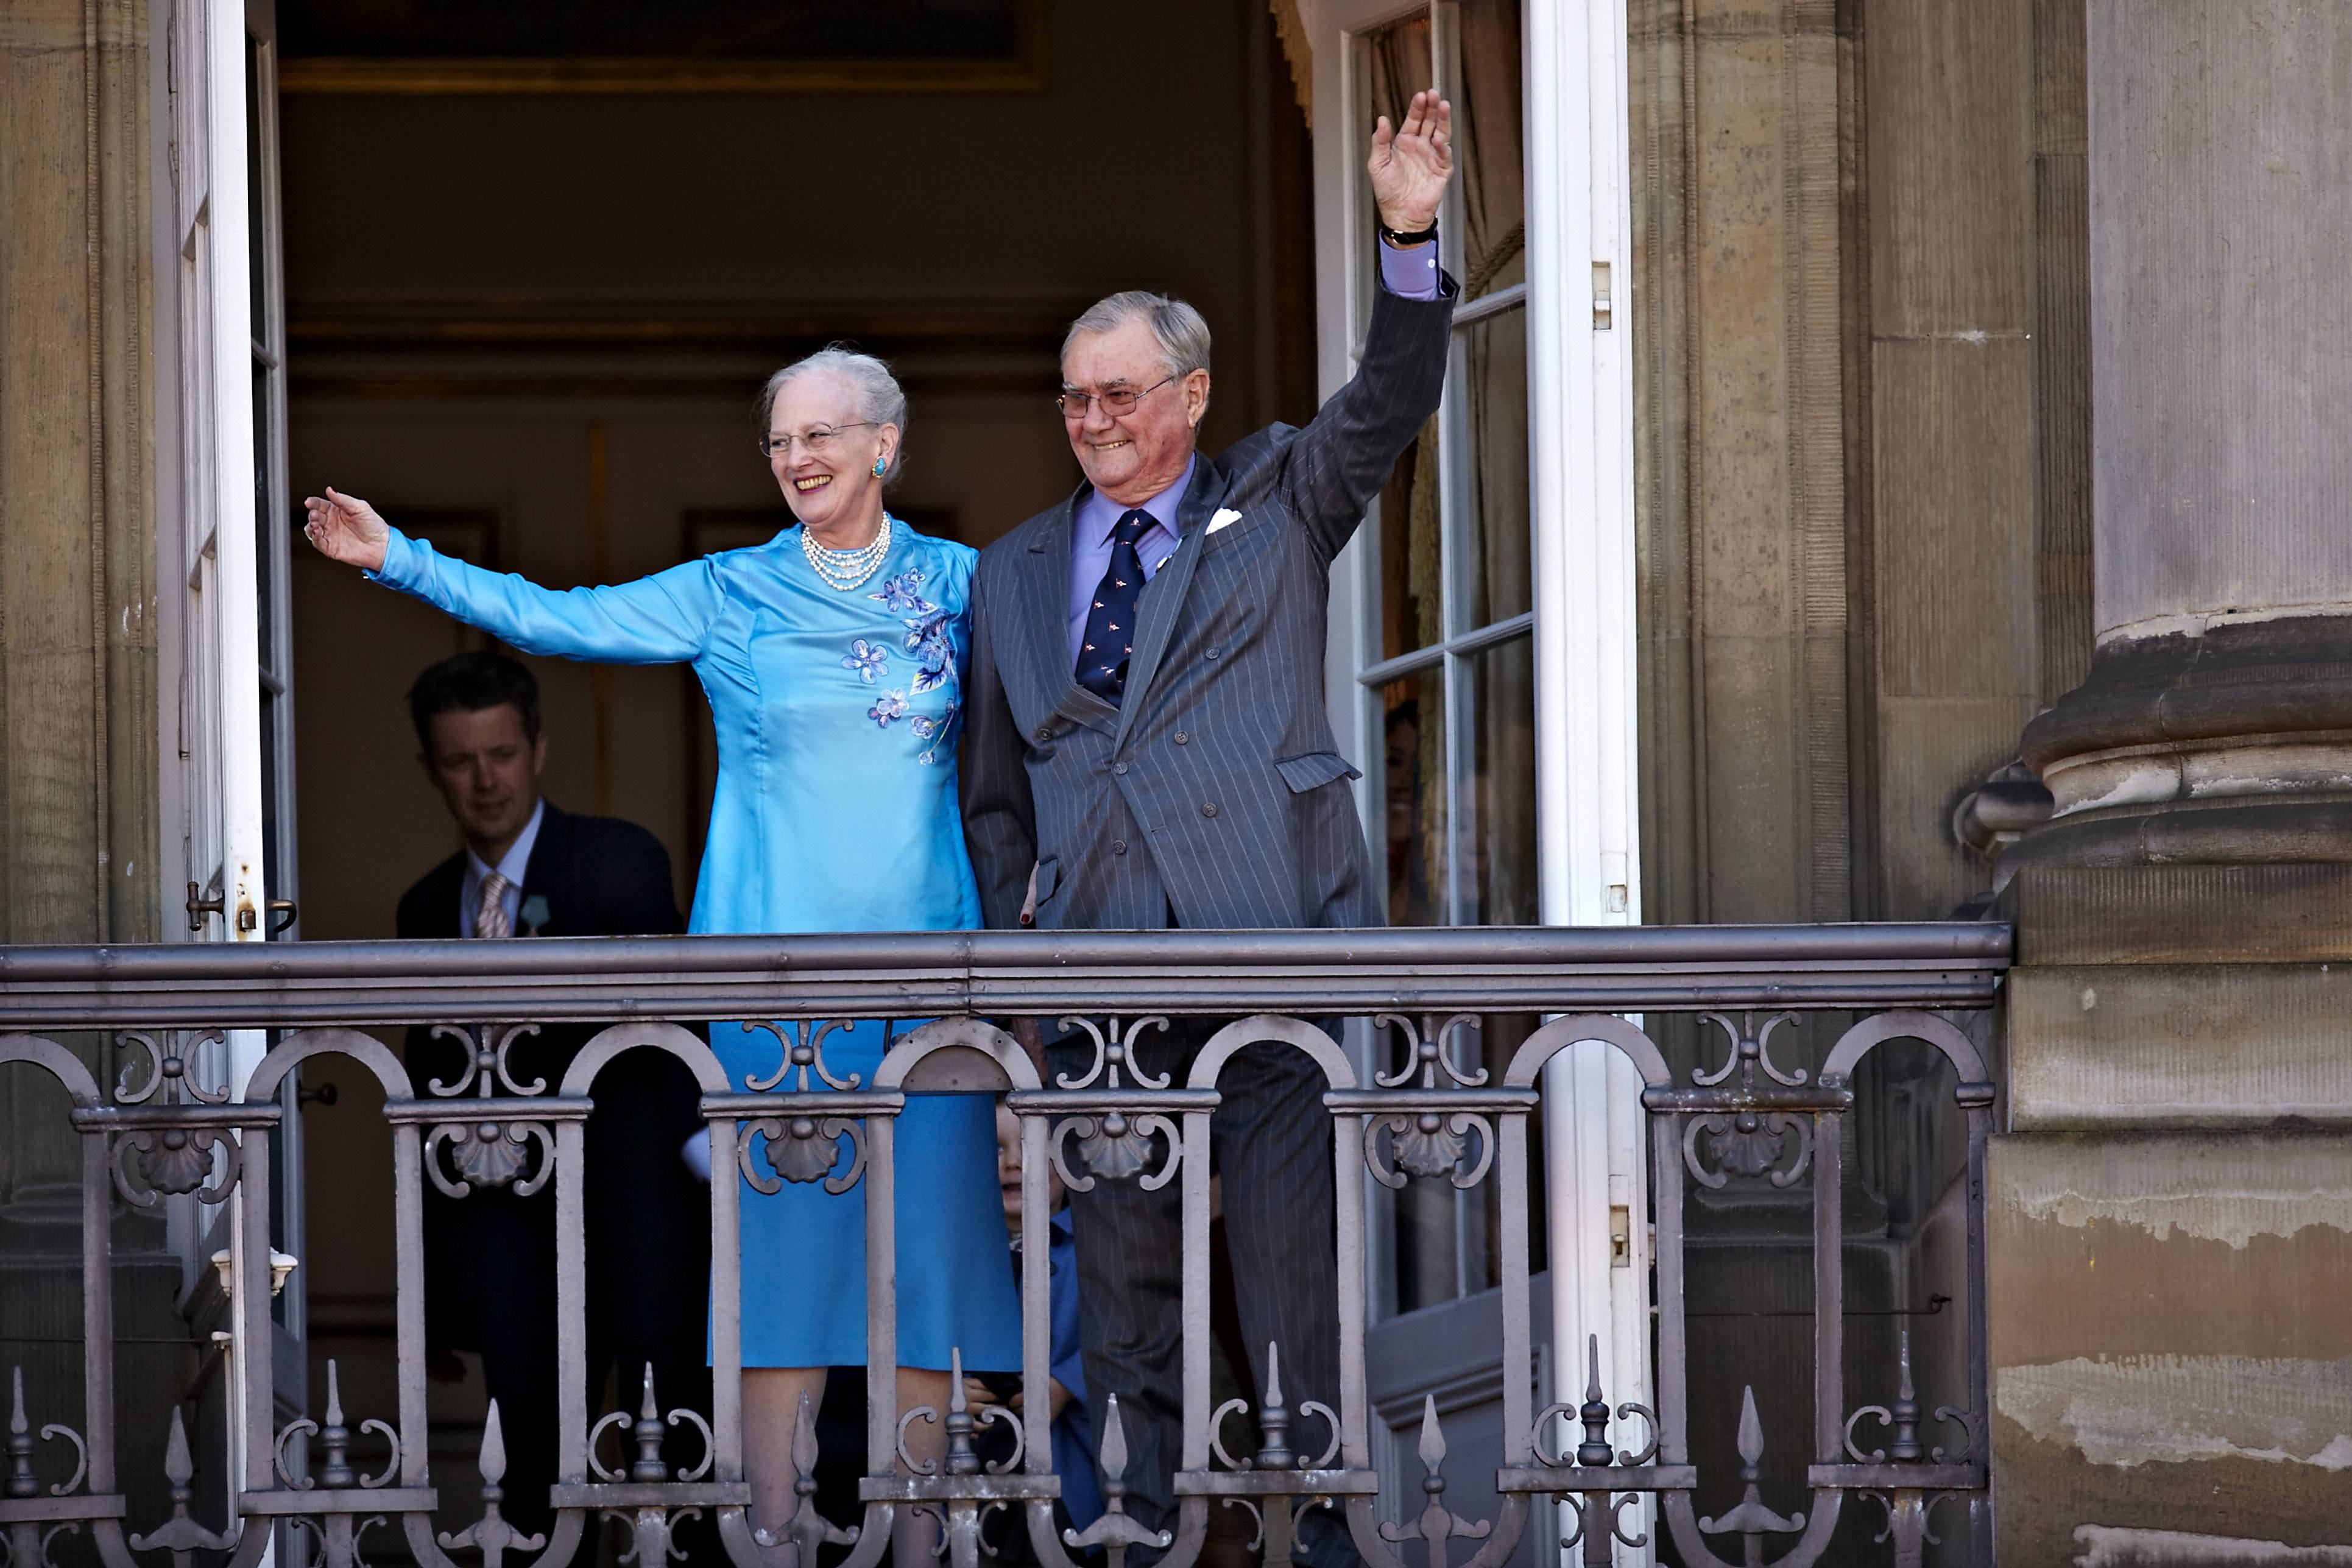 Queen Margrethe and Prince Henrik of Denmark waving from a balcony